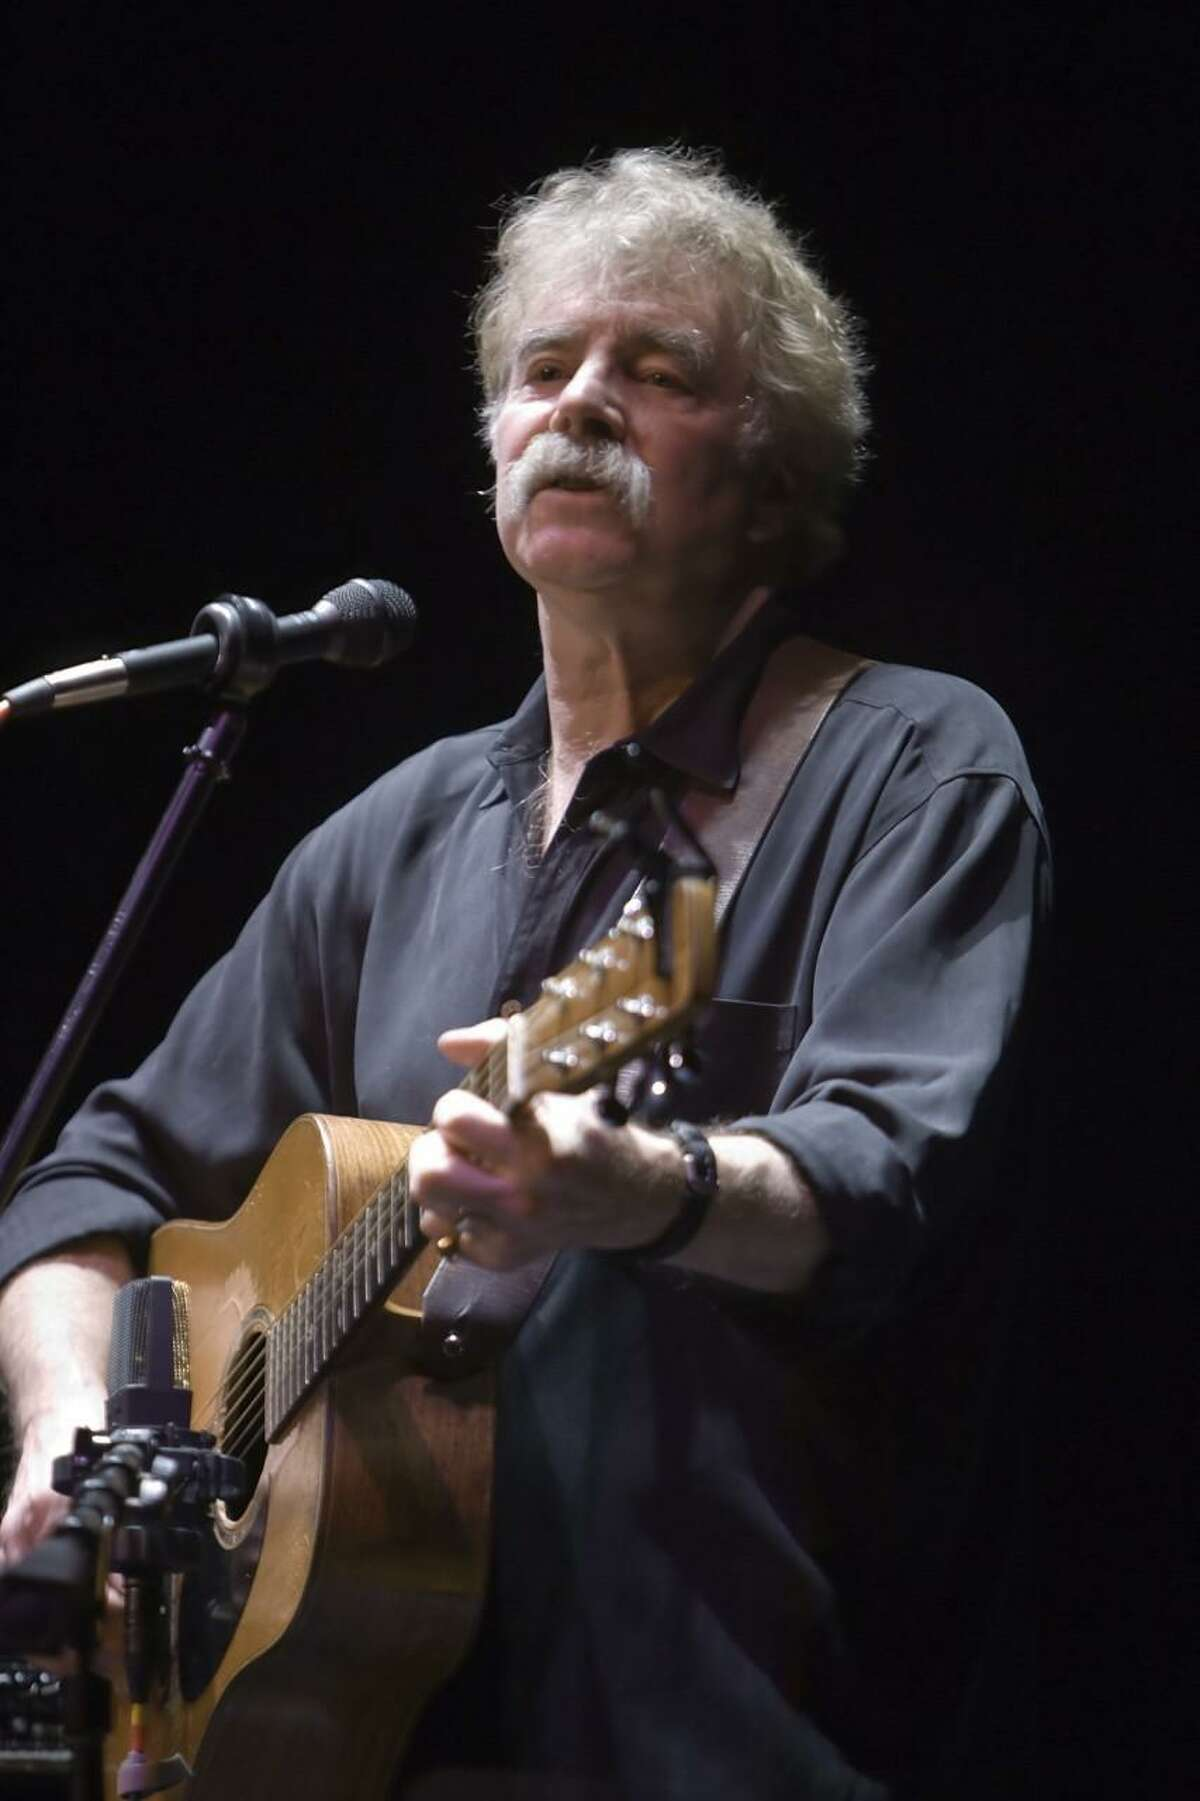 Tom Rush is scheduled to perform at Bridge Street Live at 8 p.m. on Nov. 7.